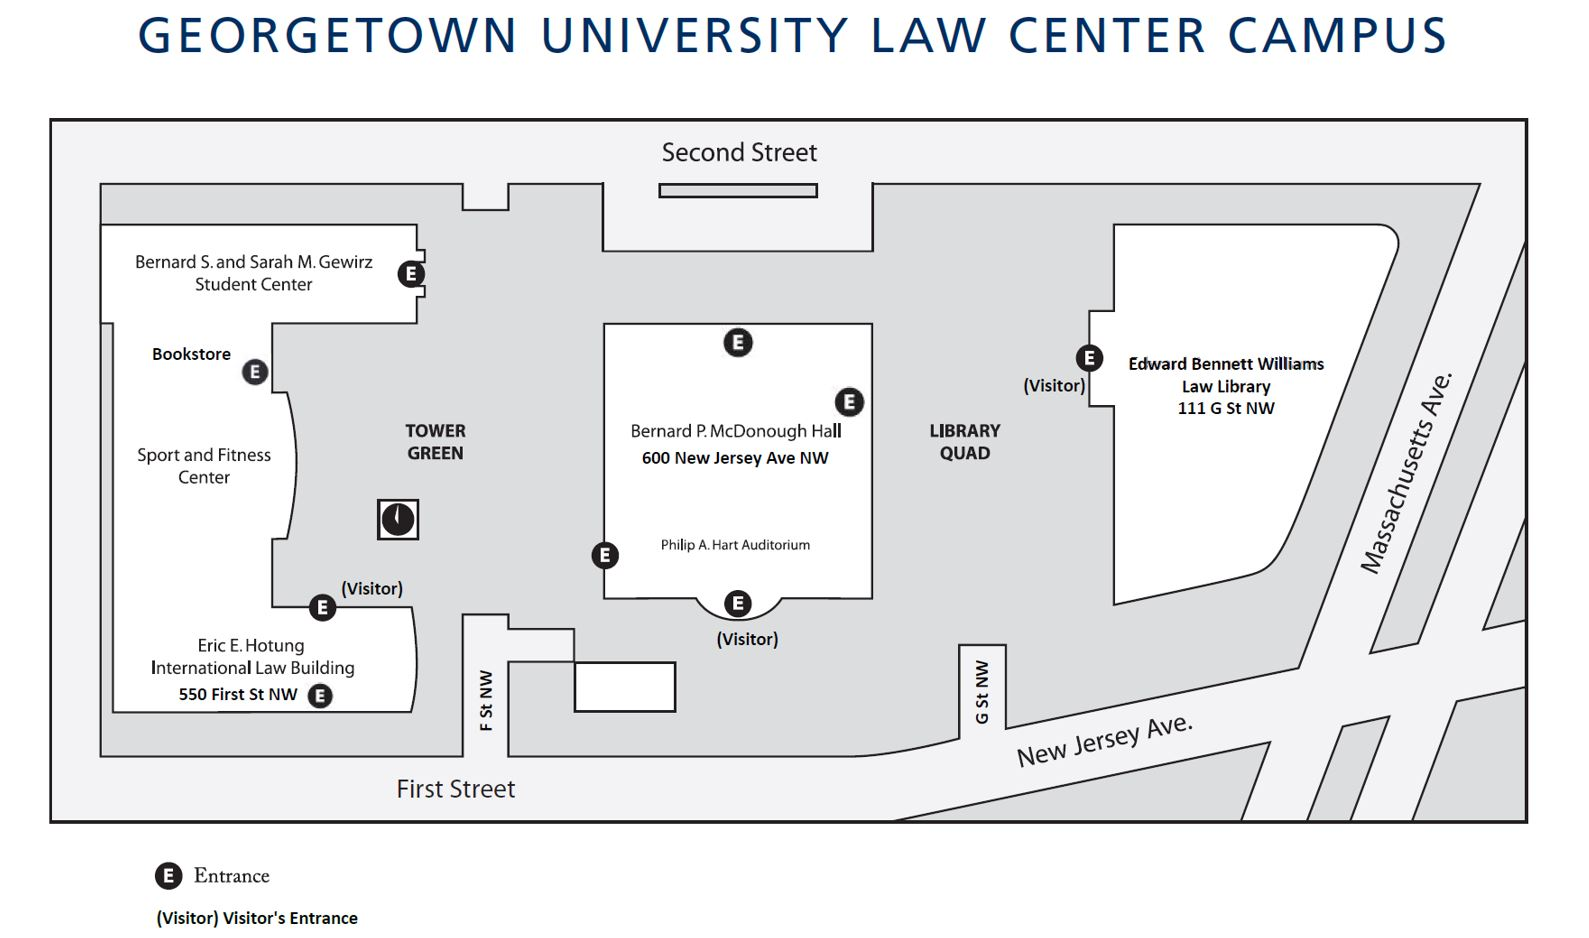 Georgetown Law Center Campus Map